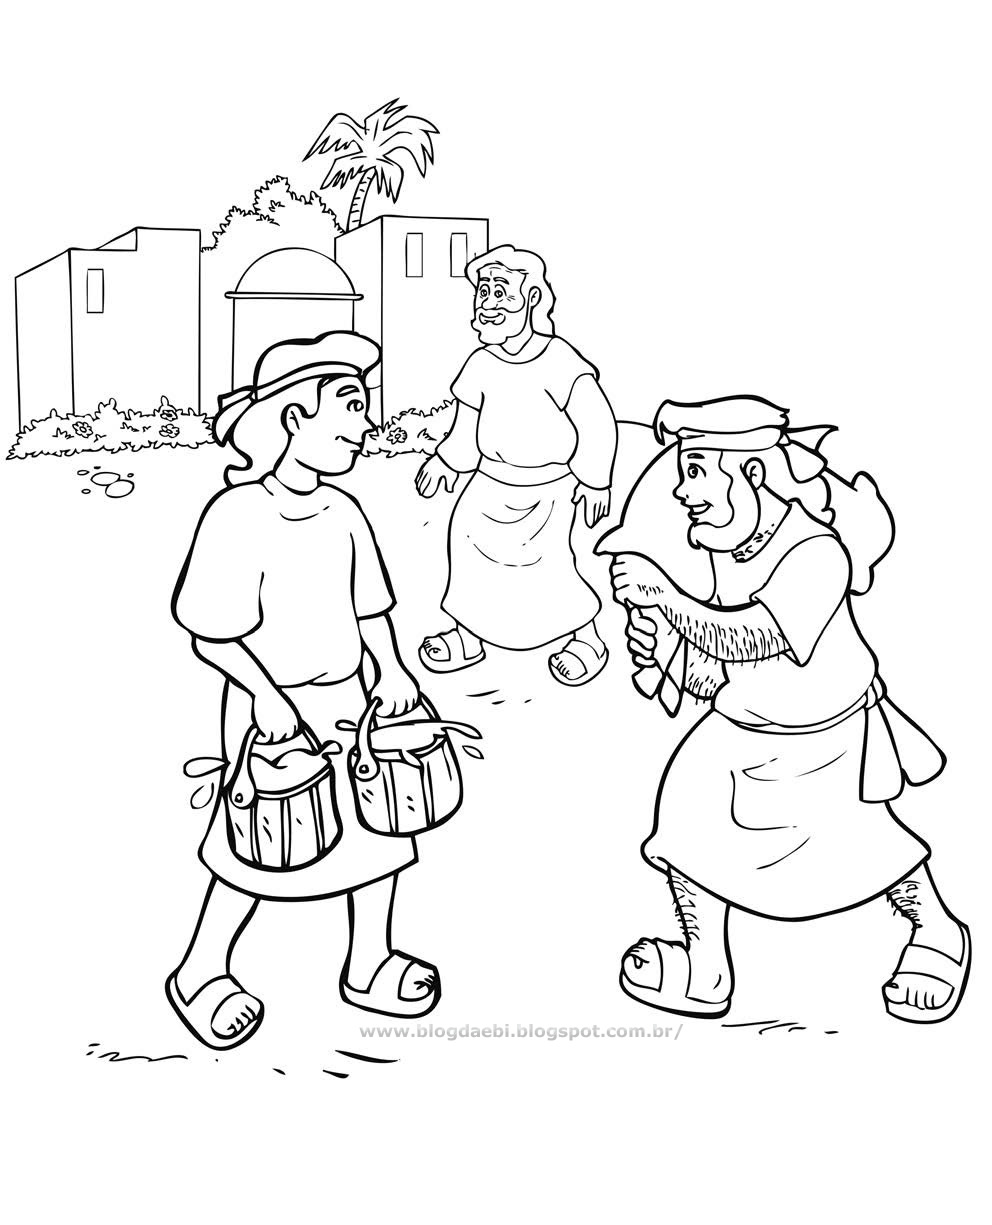 Free coloring pages of esau bible story